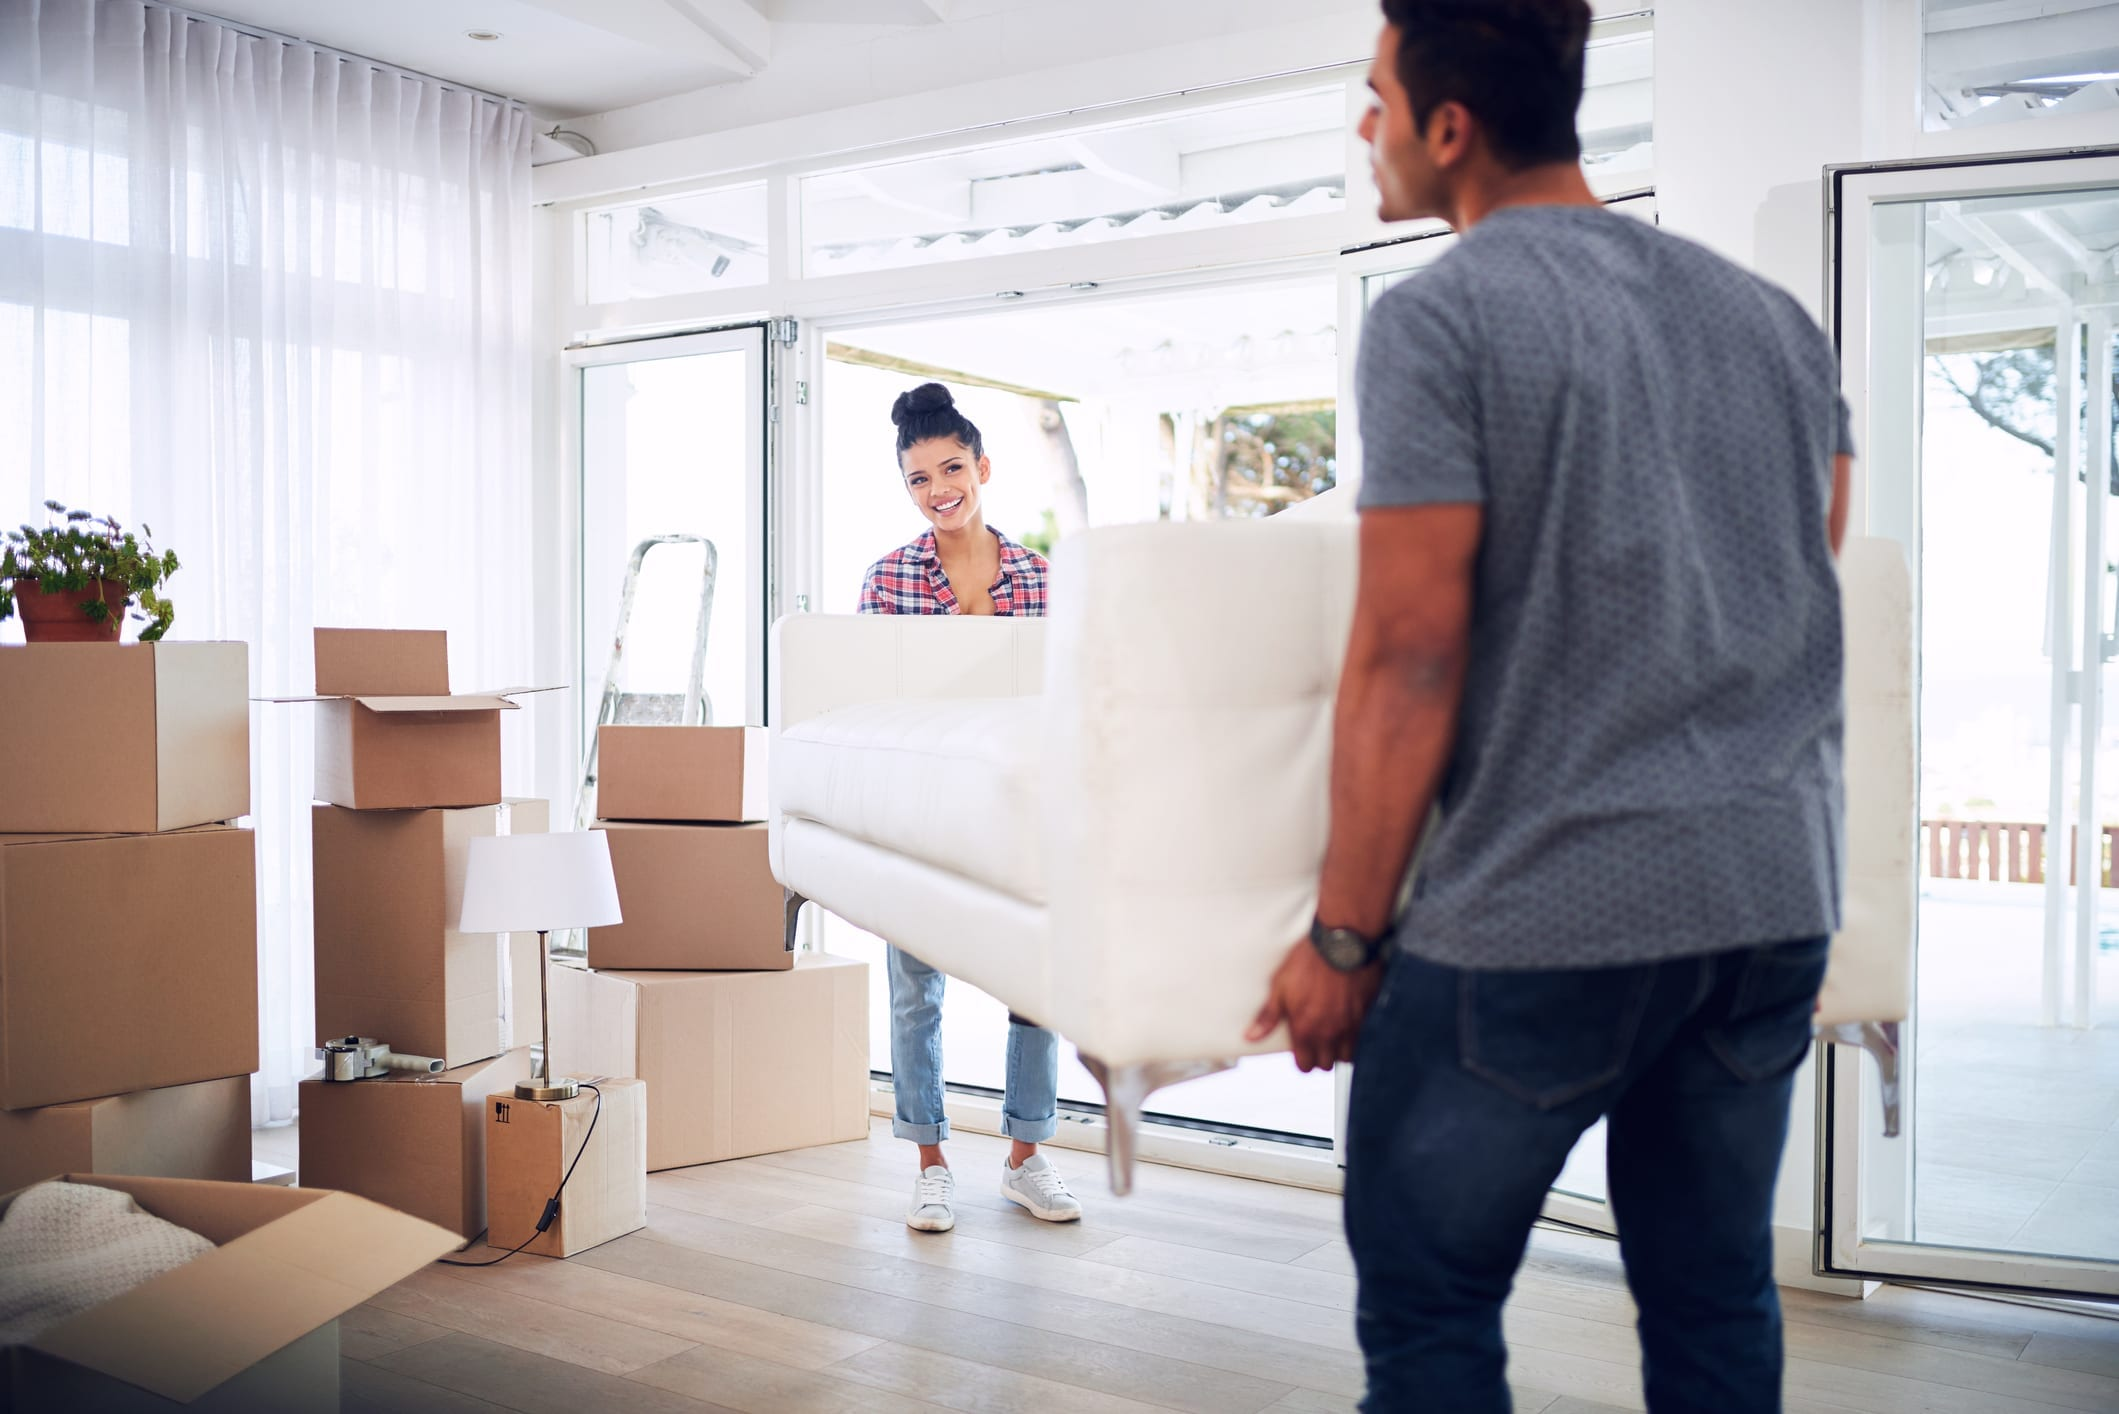 How Much Does It Cost To Ship Furniture?